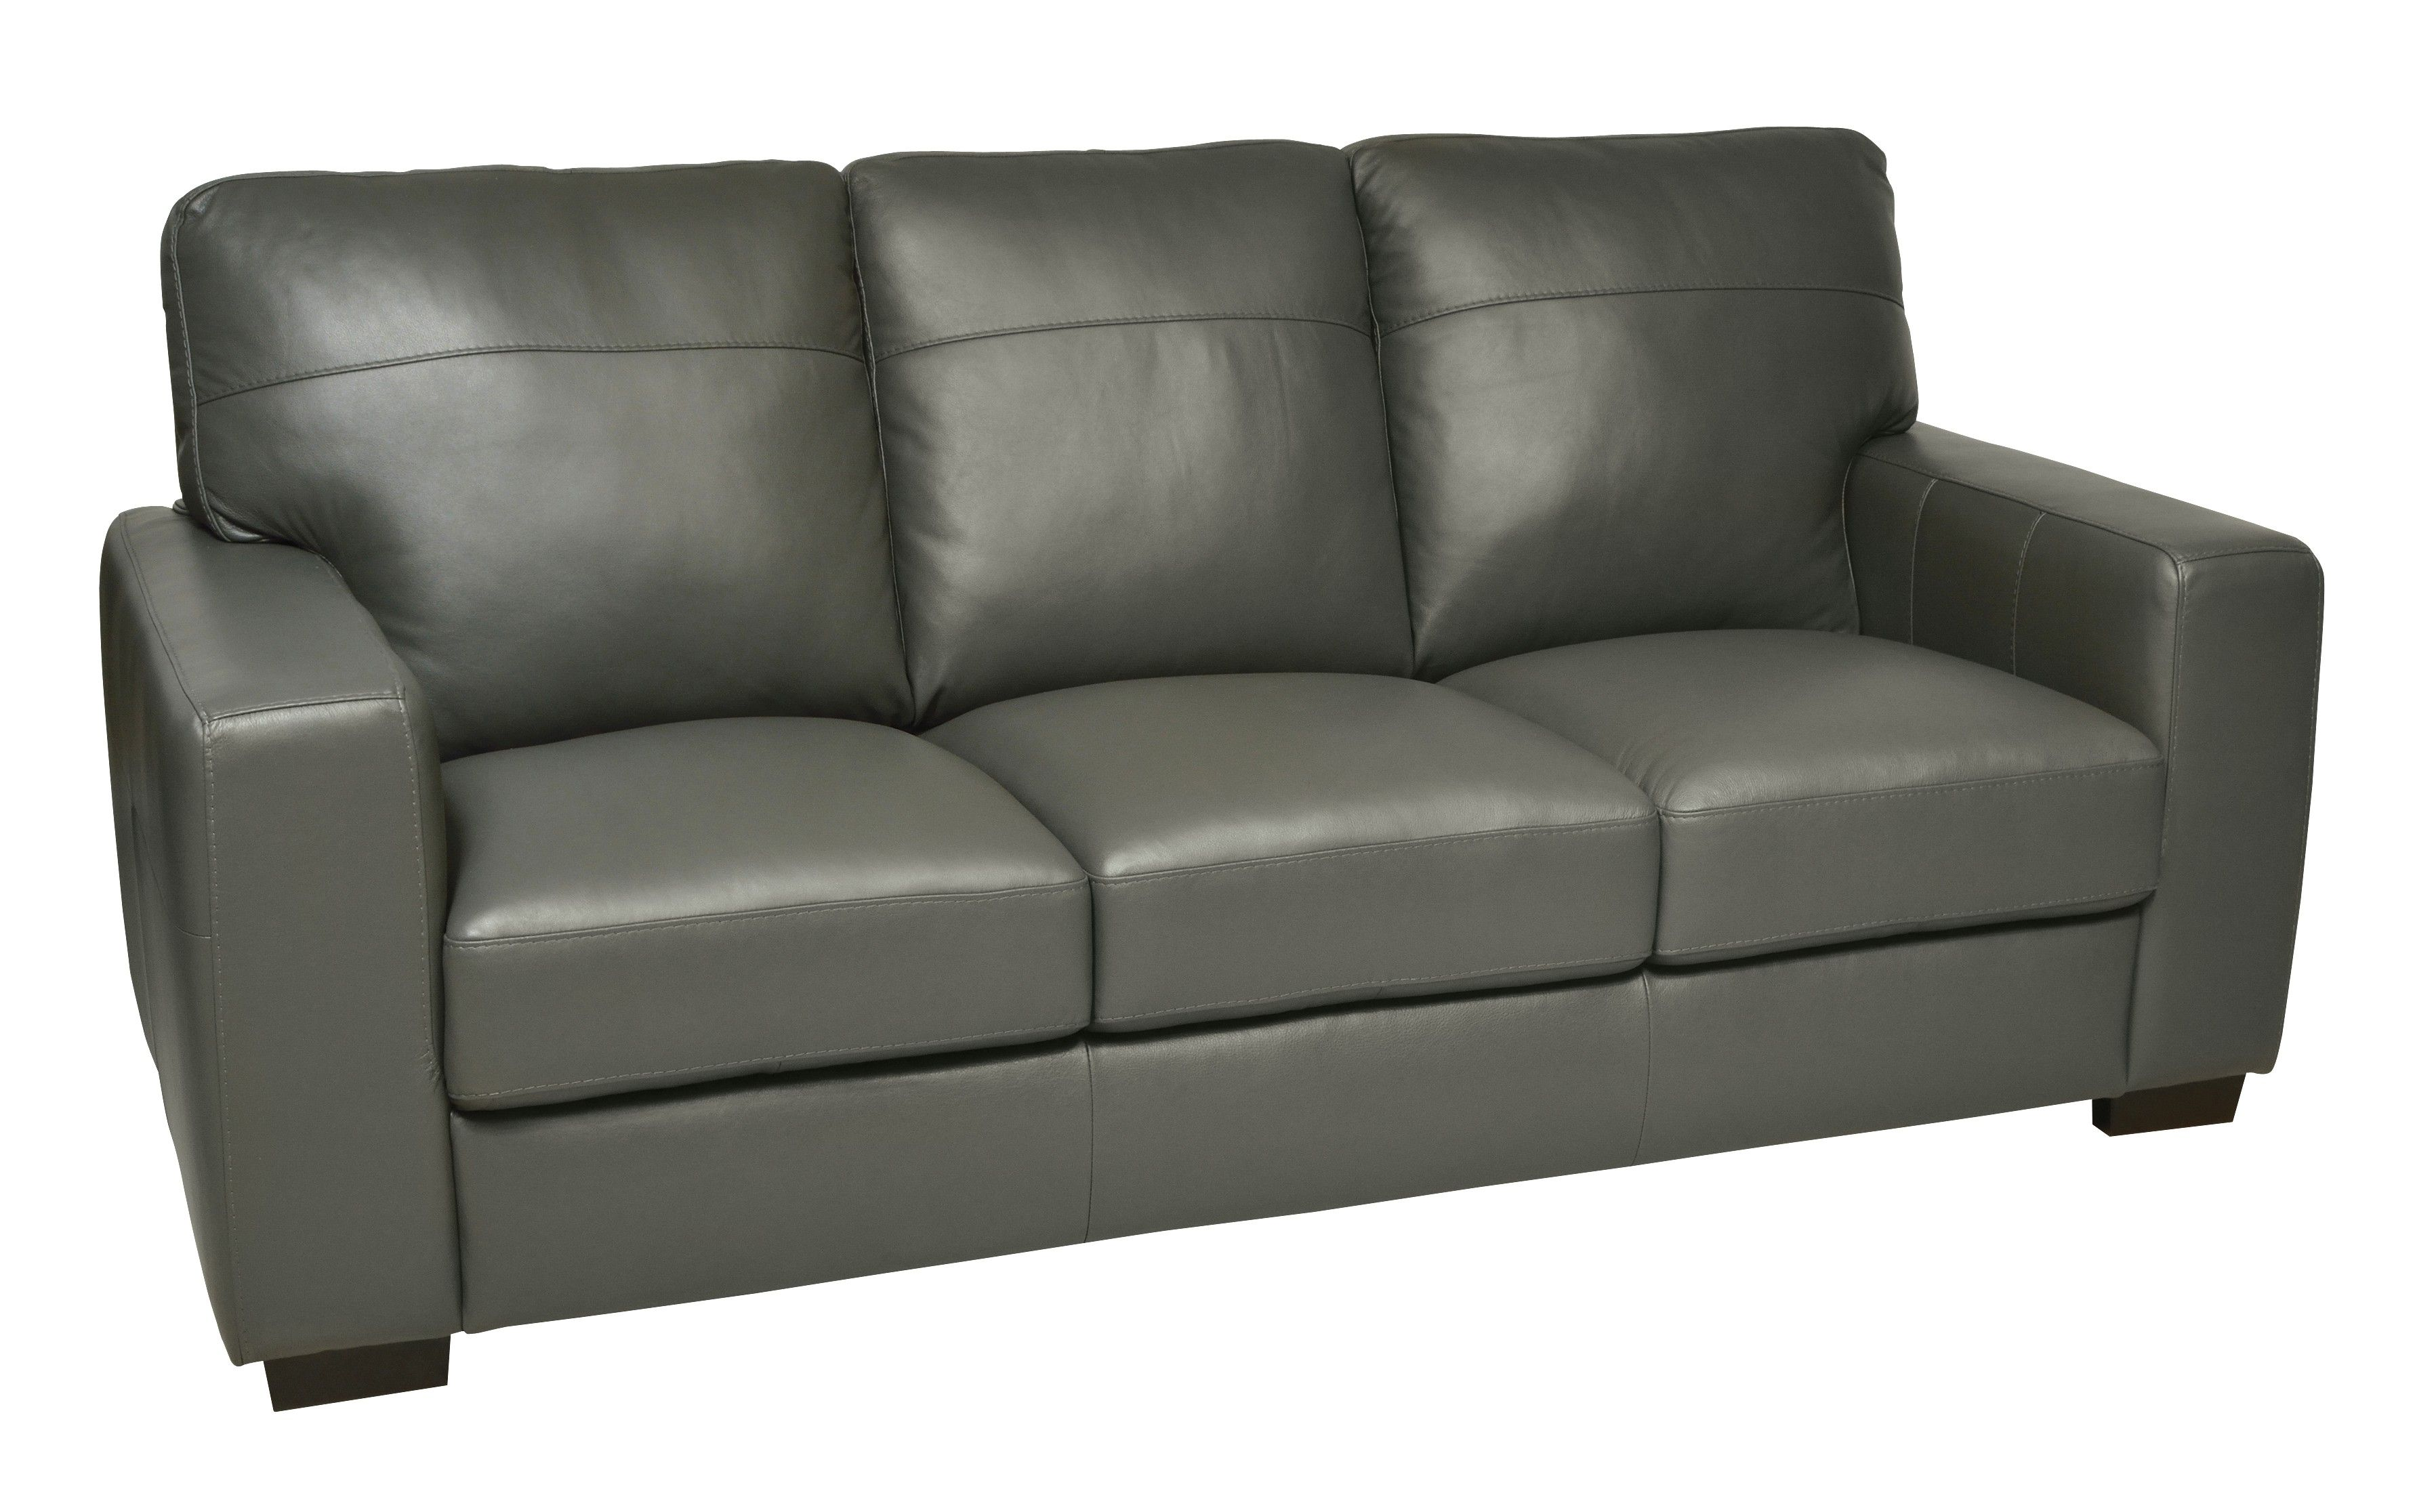 Grey Leather Sofa Ideas Convertible Sectional Bed Camel Chocolate Beau Italian Living Room